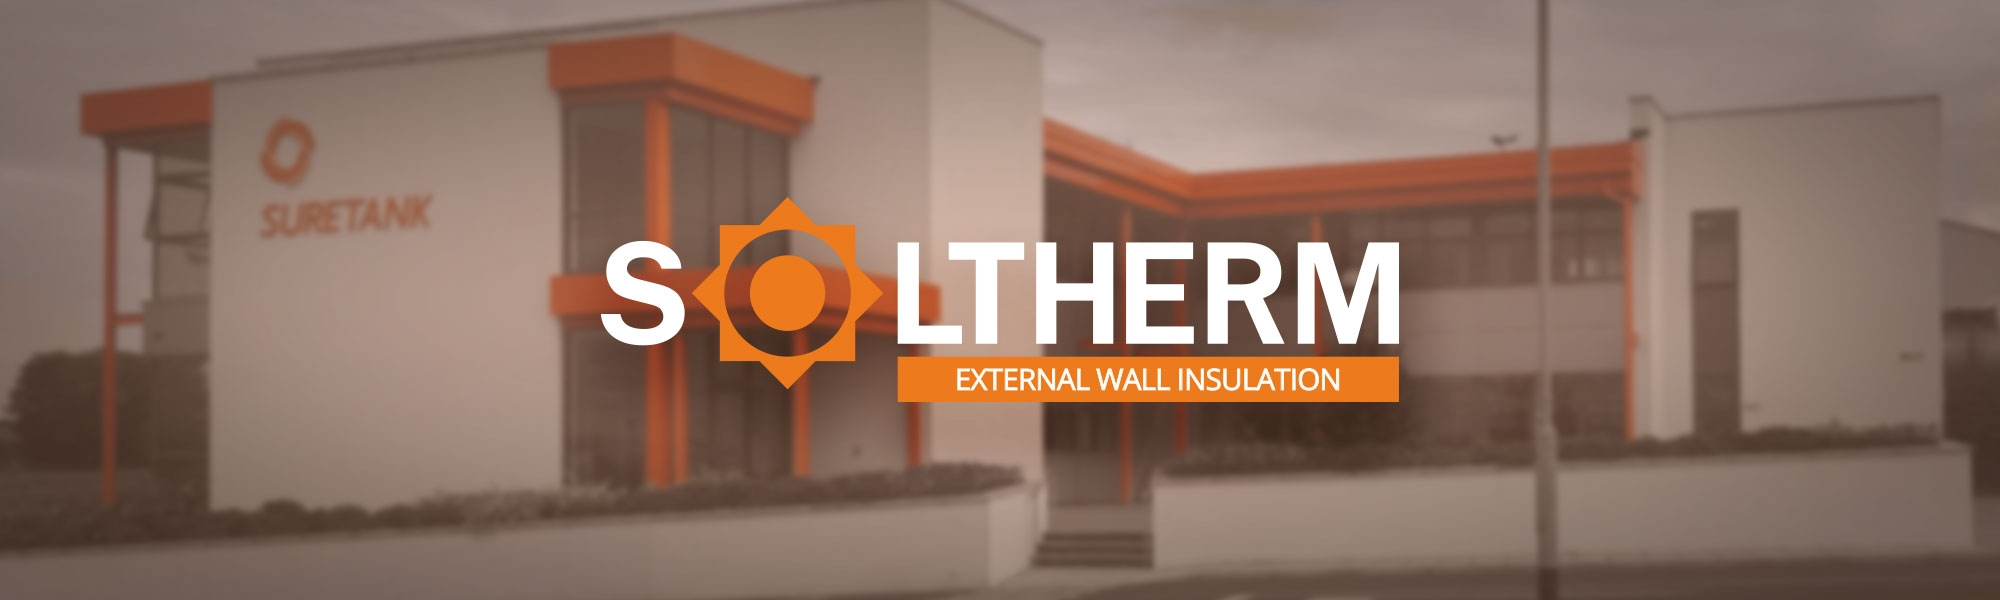 Soltherm EWI External Wall Insulation Construction Systems